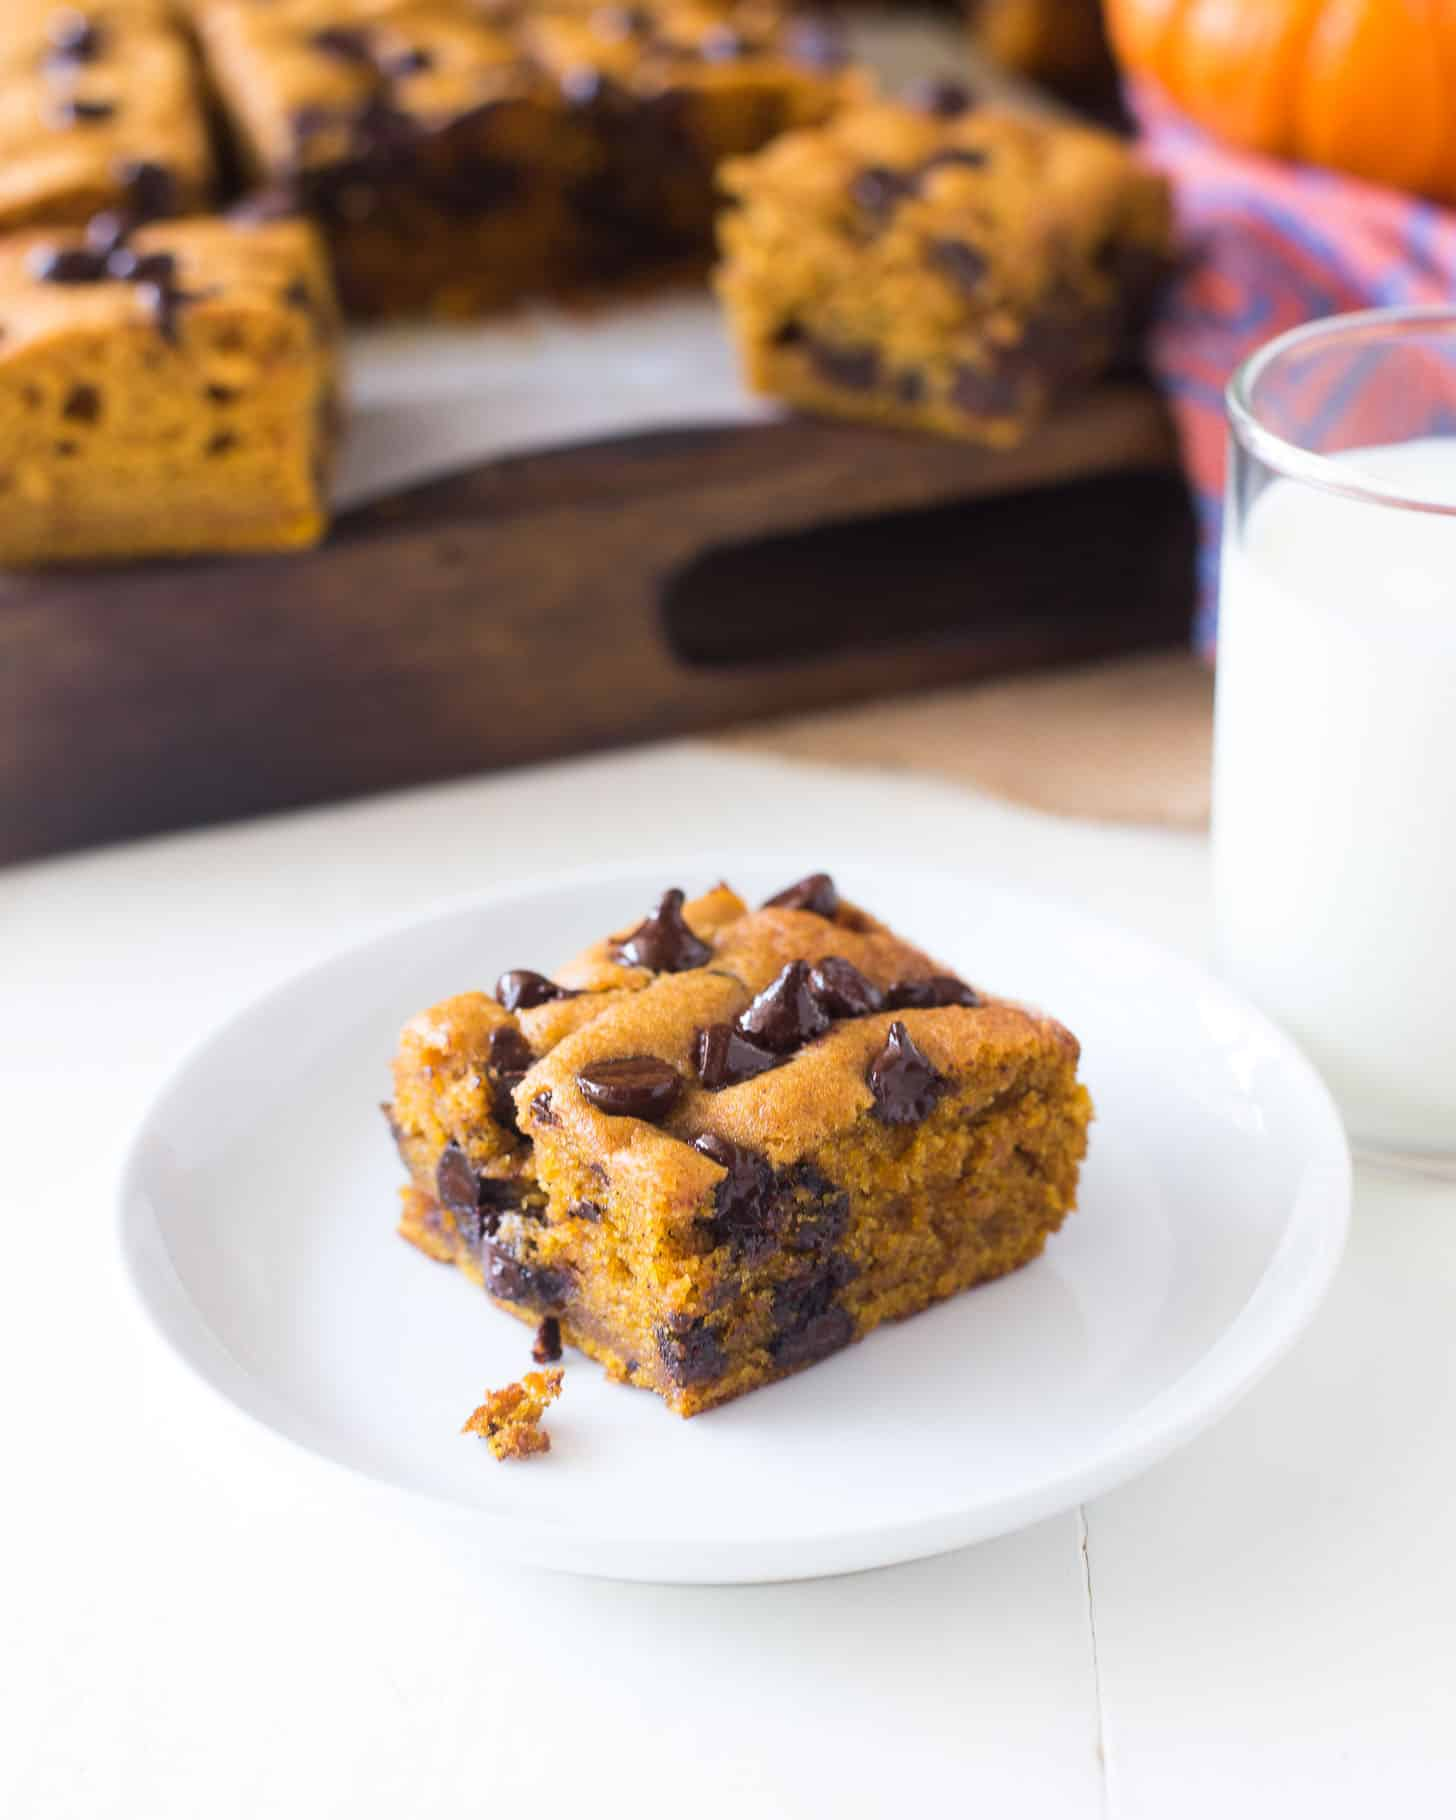 a piece of Pumpkin Chocolate Chip Snack Cake on a white plate